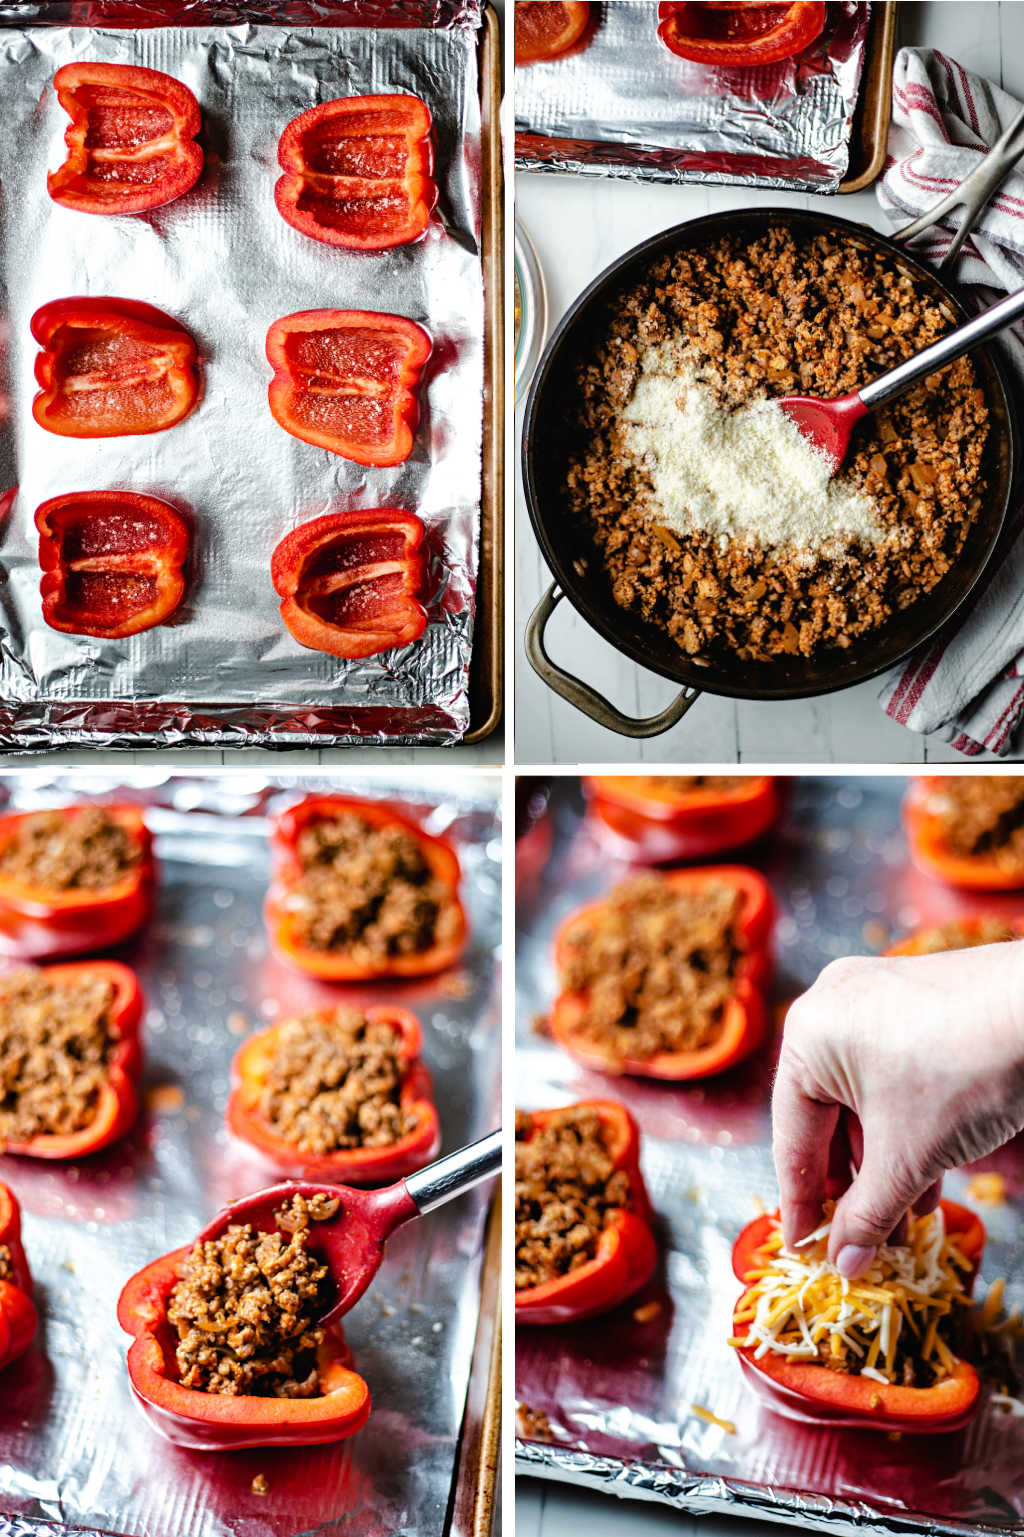 process steps for stuffing red bell peppers with meat and cheese for keto bell peppers.